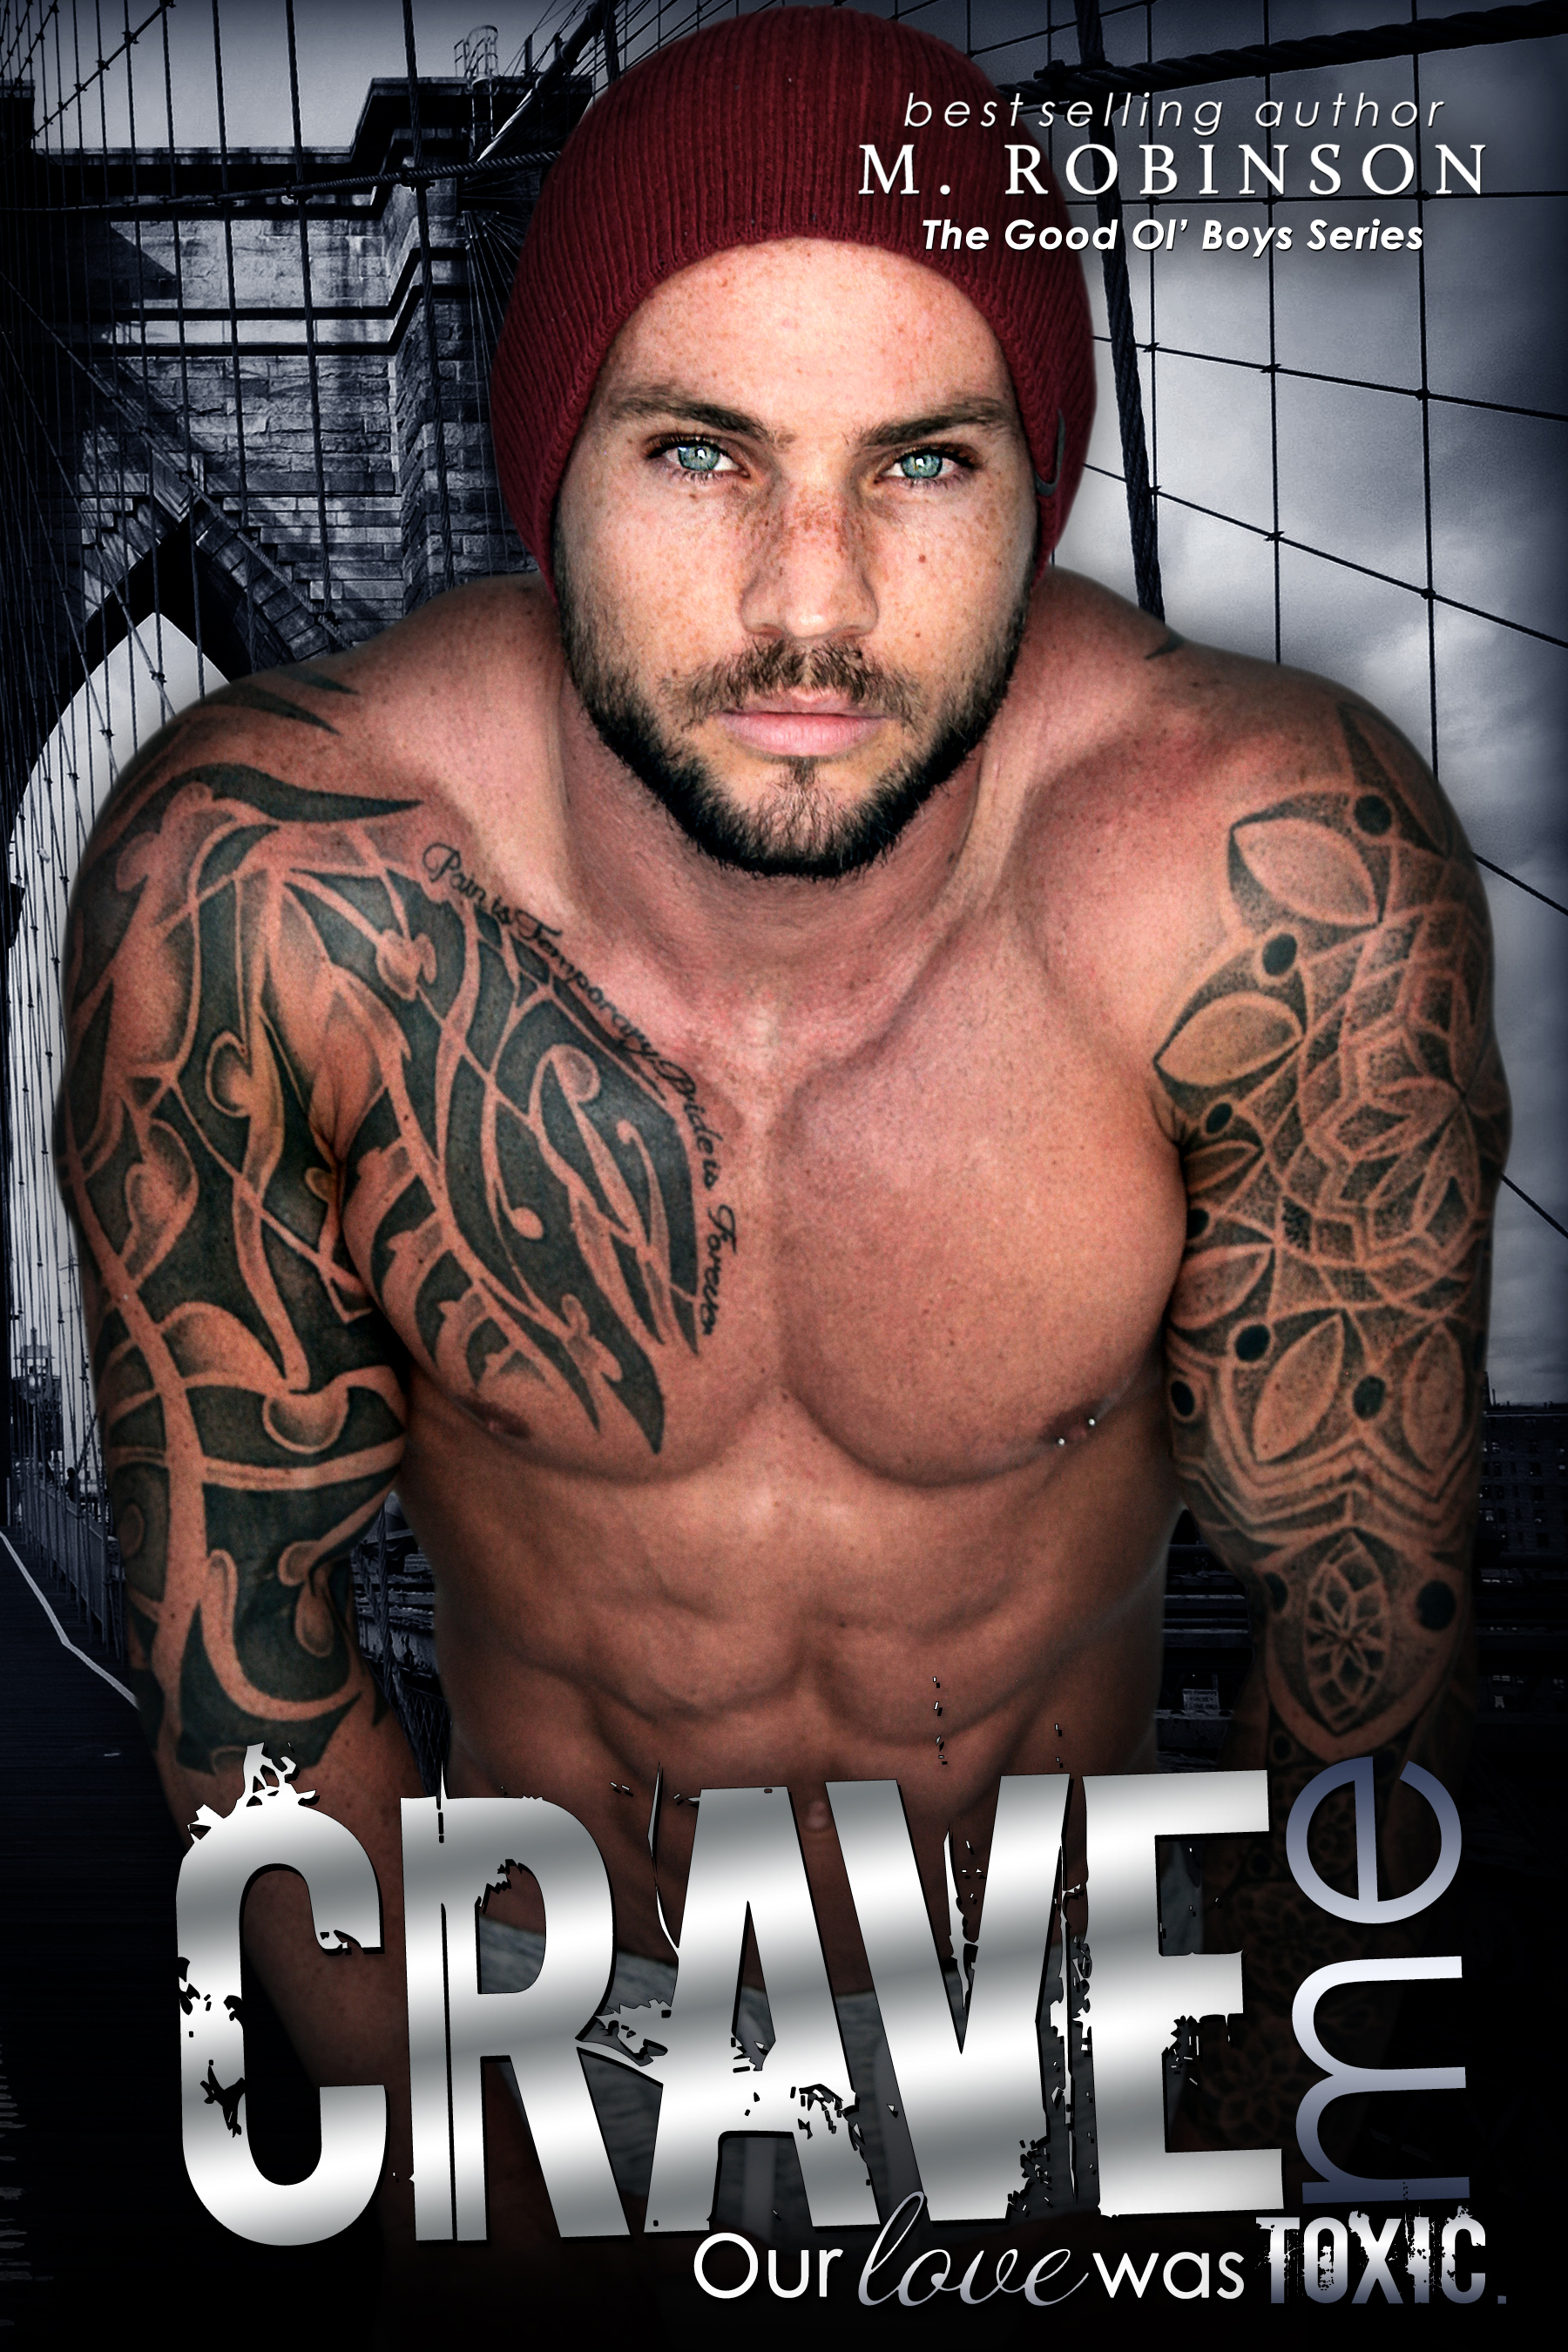 REVIEW: Crave Me (The Good Ole Boys #4) by M. Robinson